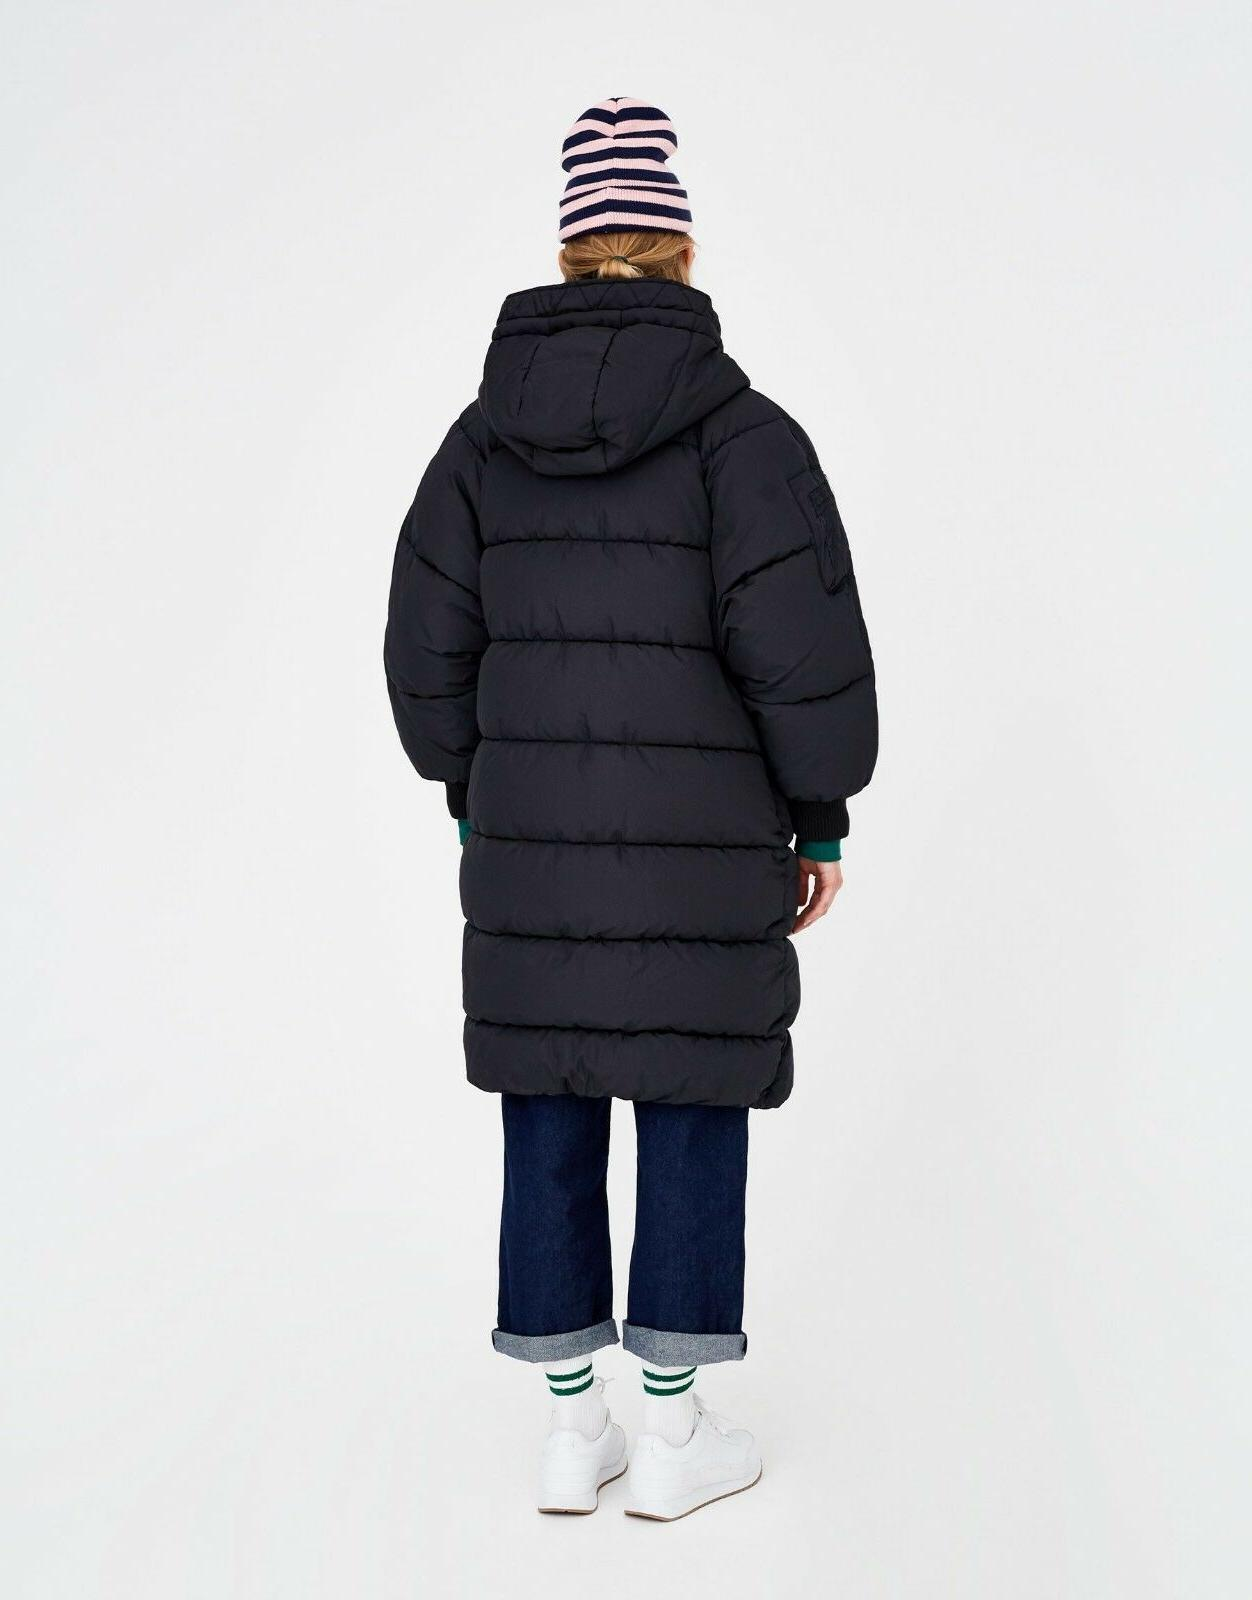 Roiii Winter Hood Size Long Parka Jacket